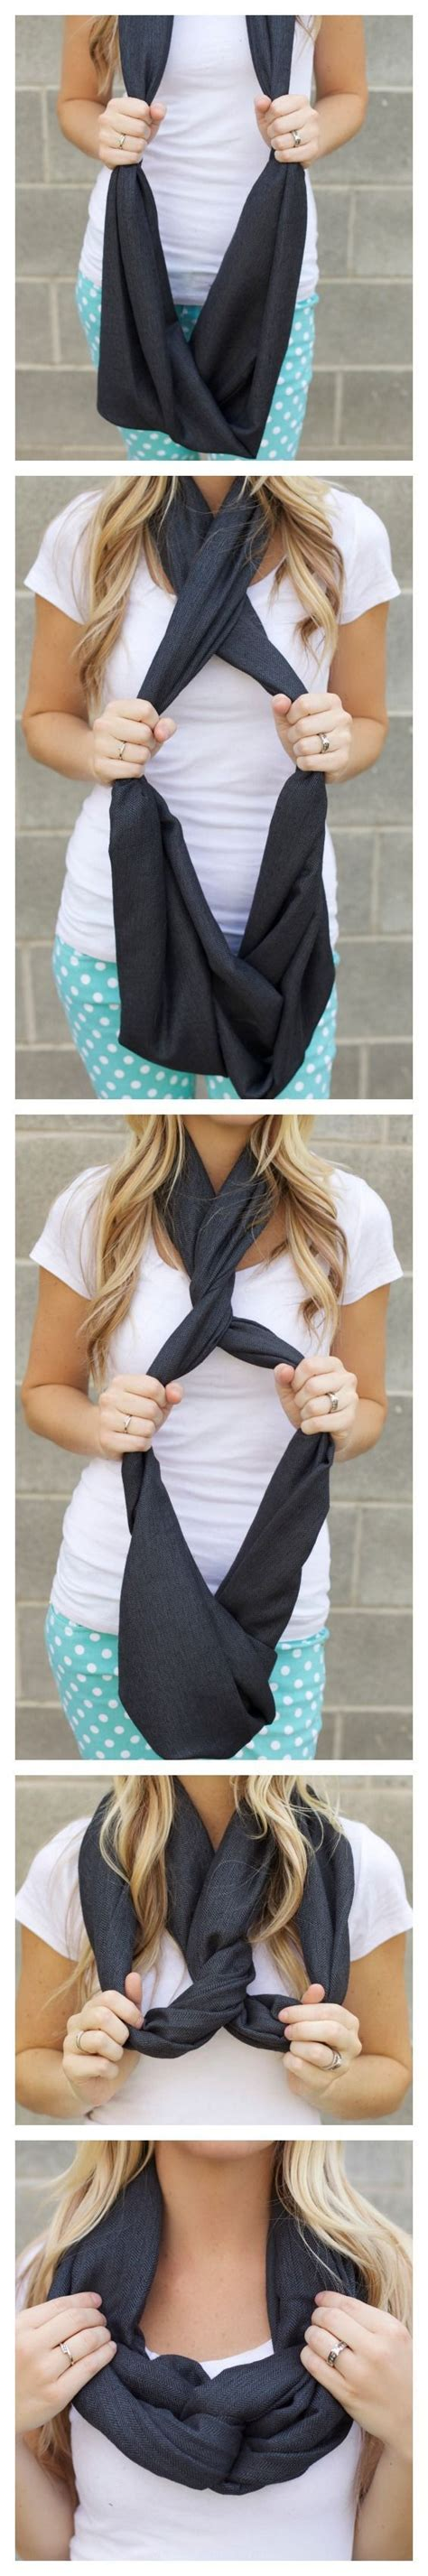 Ways To Tie An Infinity Scarf Another Way To Tie An Infinity Scarf My Style